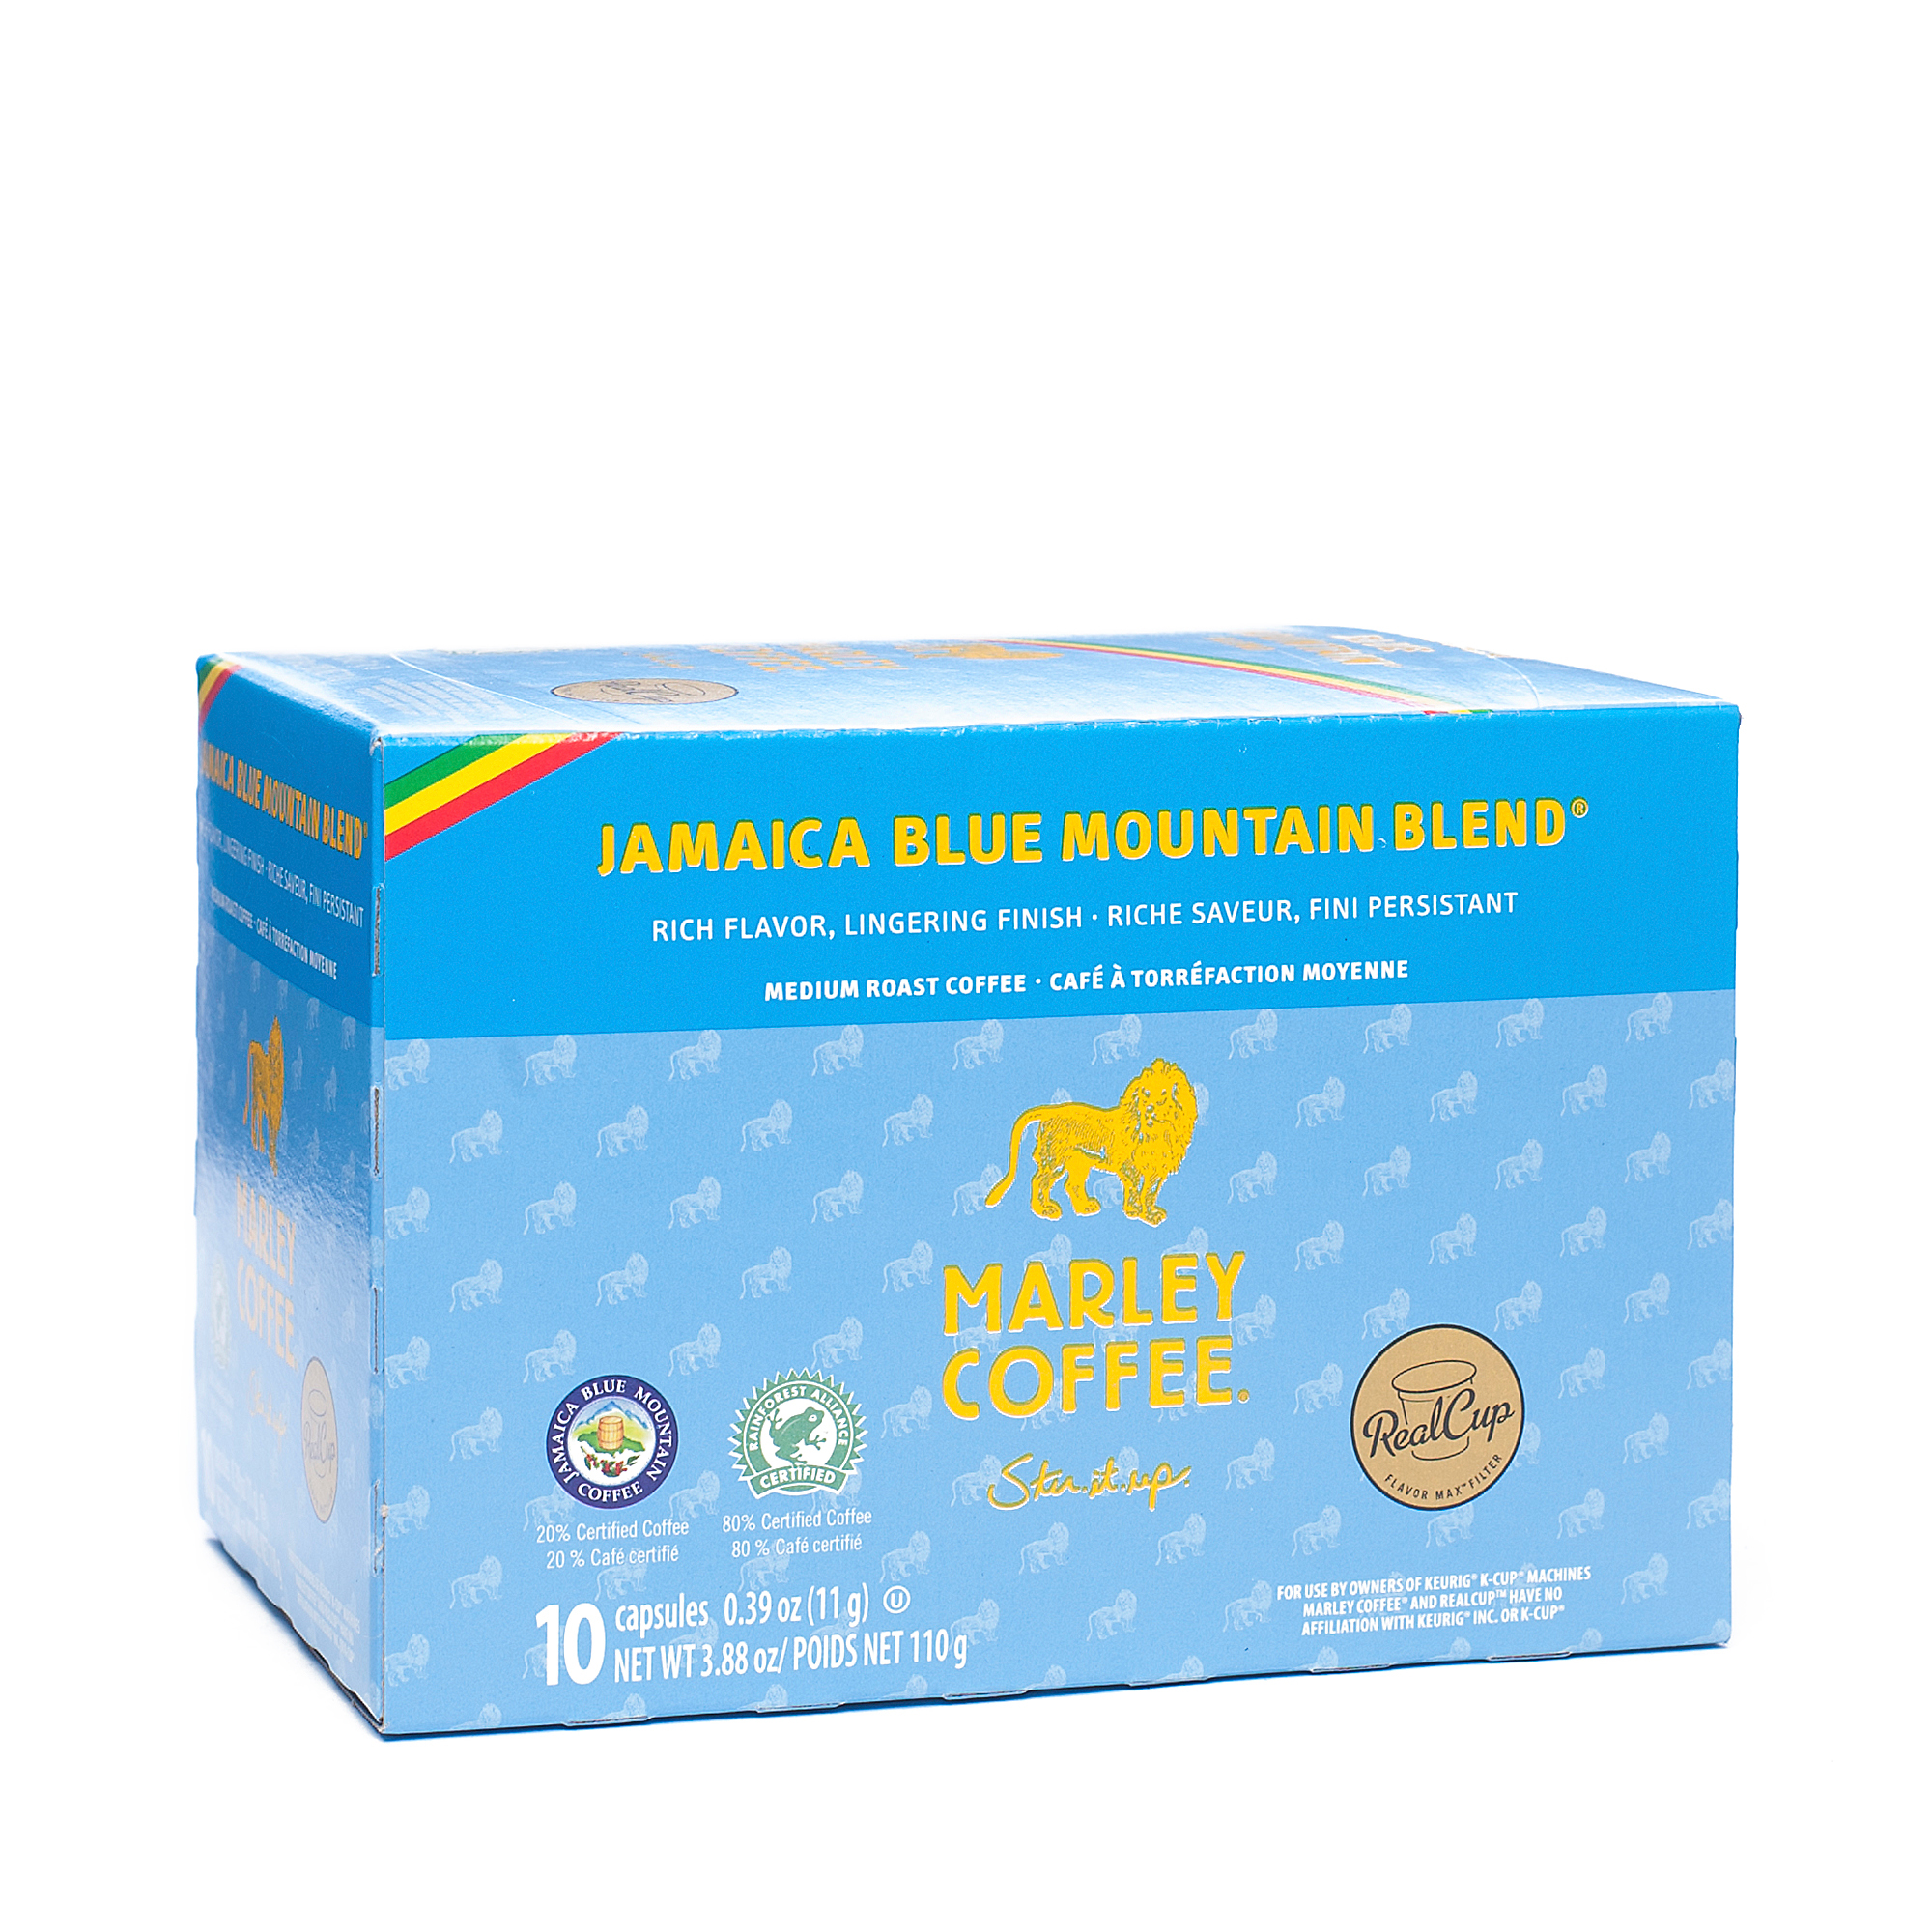 Marley Coffee Smile Jamaica Coffee - Realcup Single Serve...